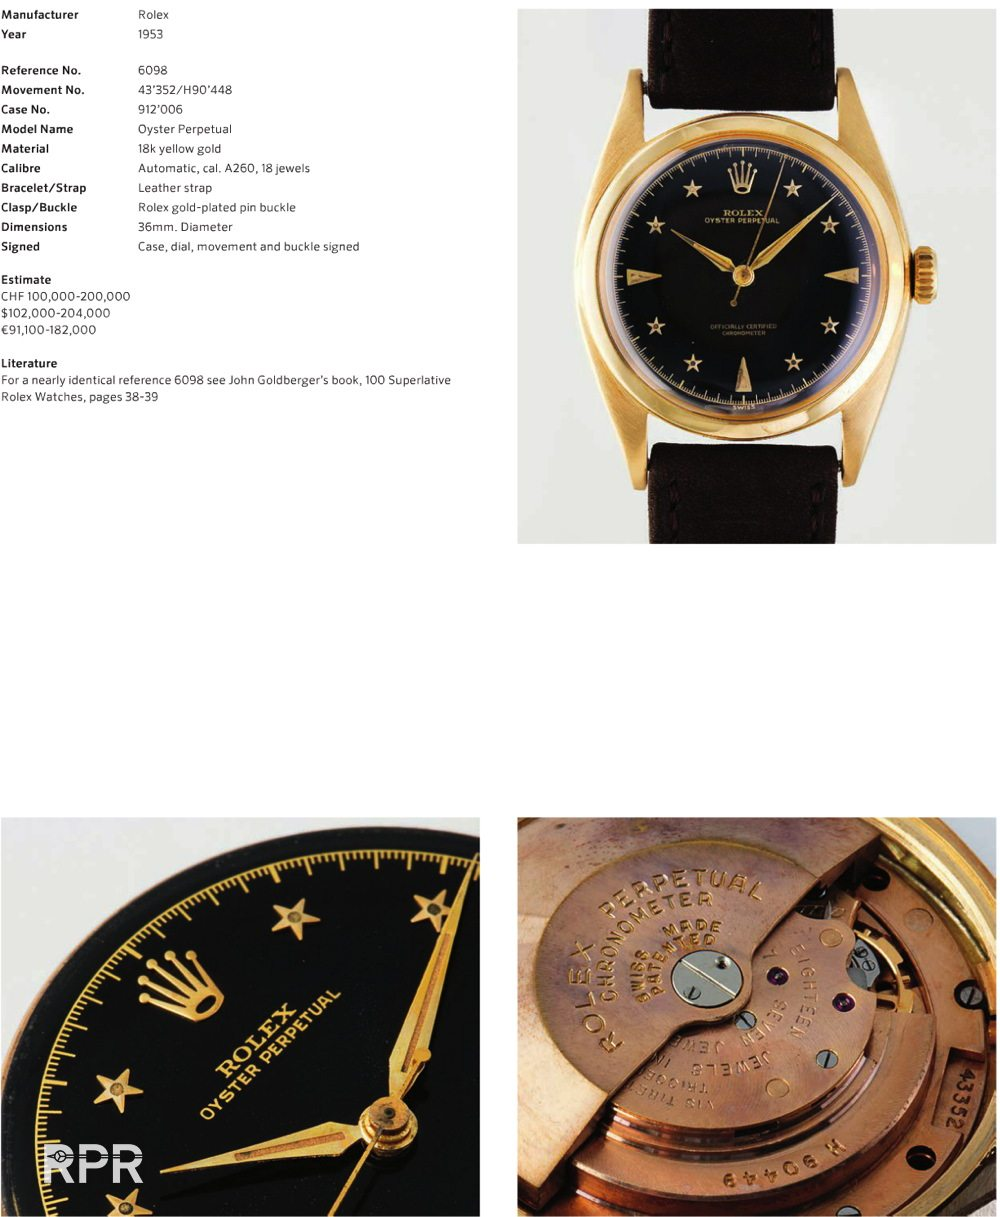 RPR_Rolex_geneva_auction_2015_75